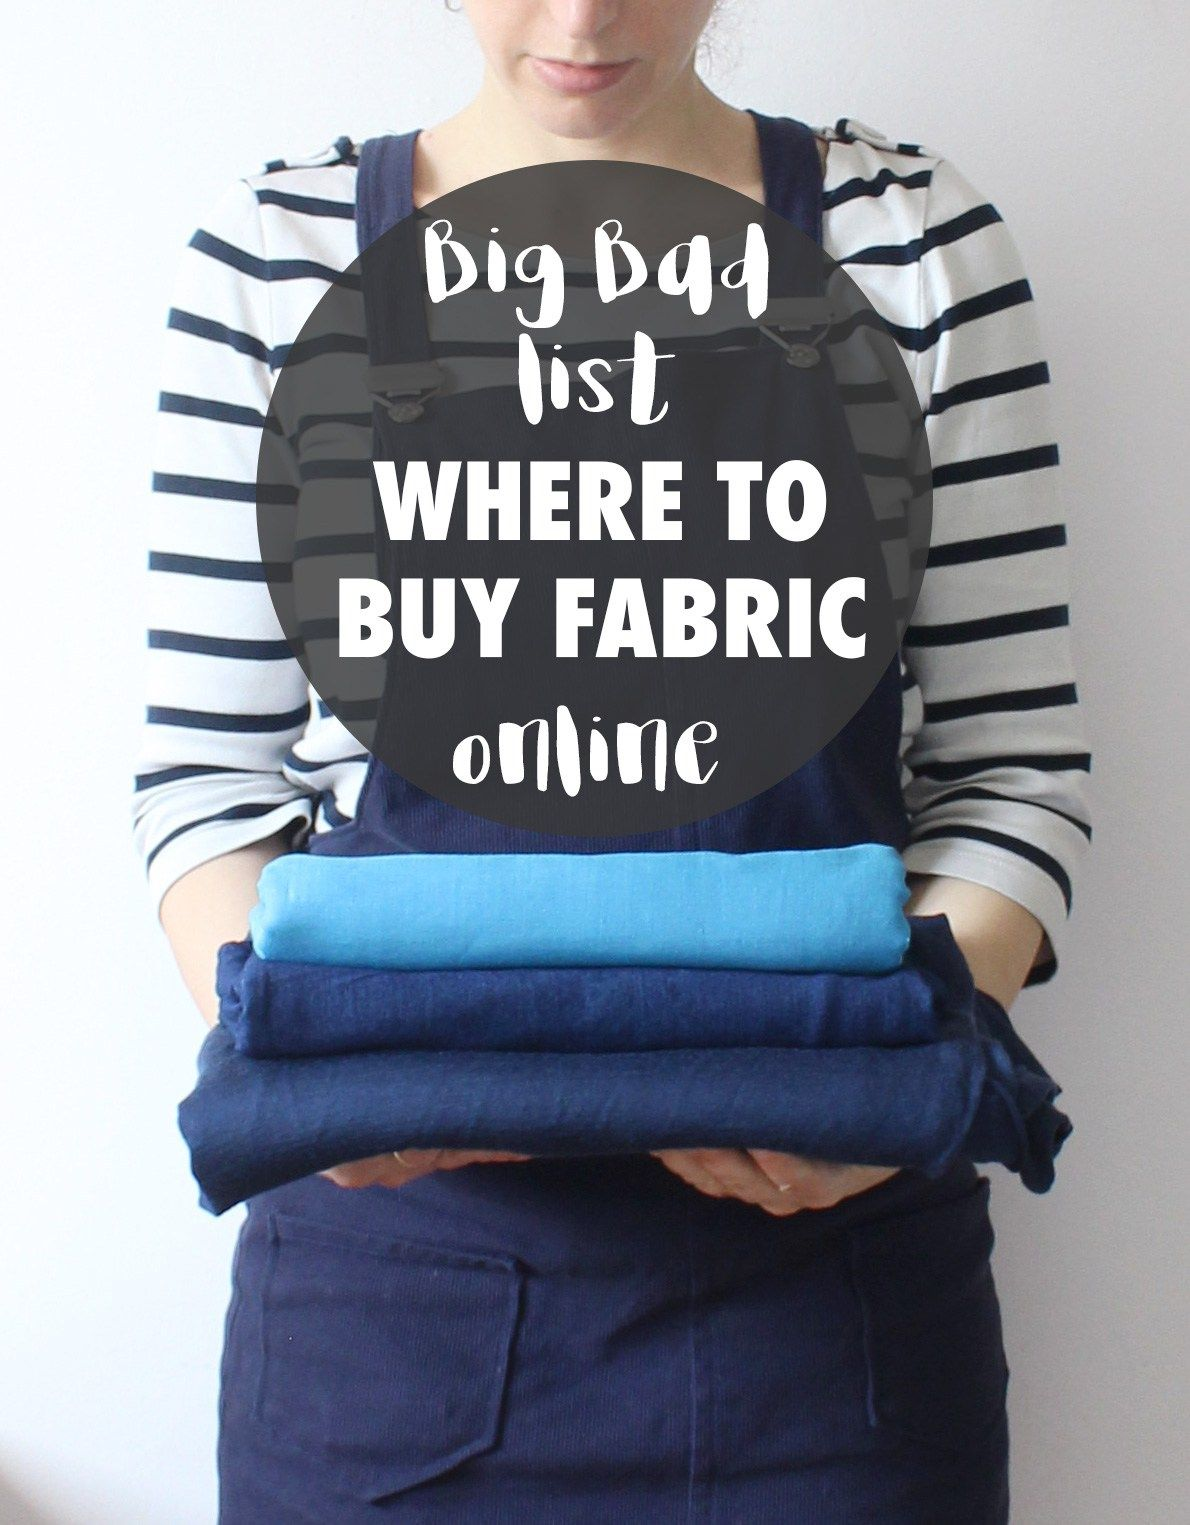 Big, bad list of where to buy fabric online #sewingprojects